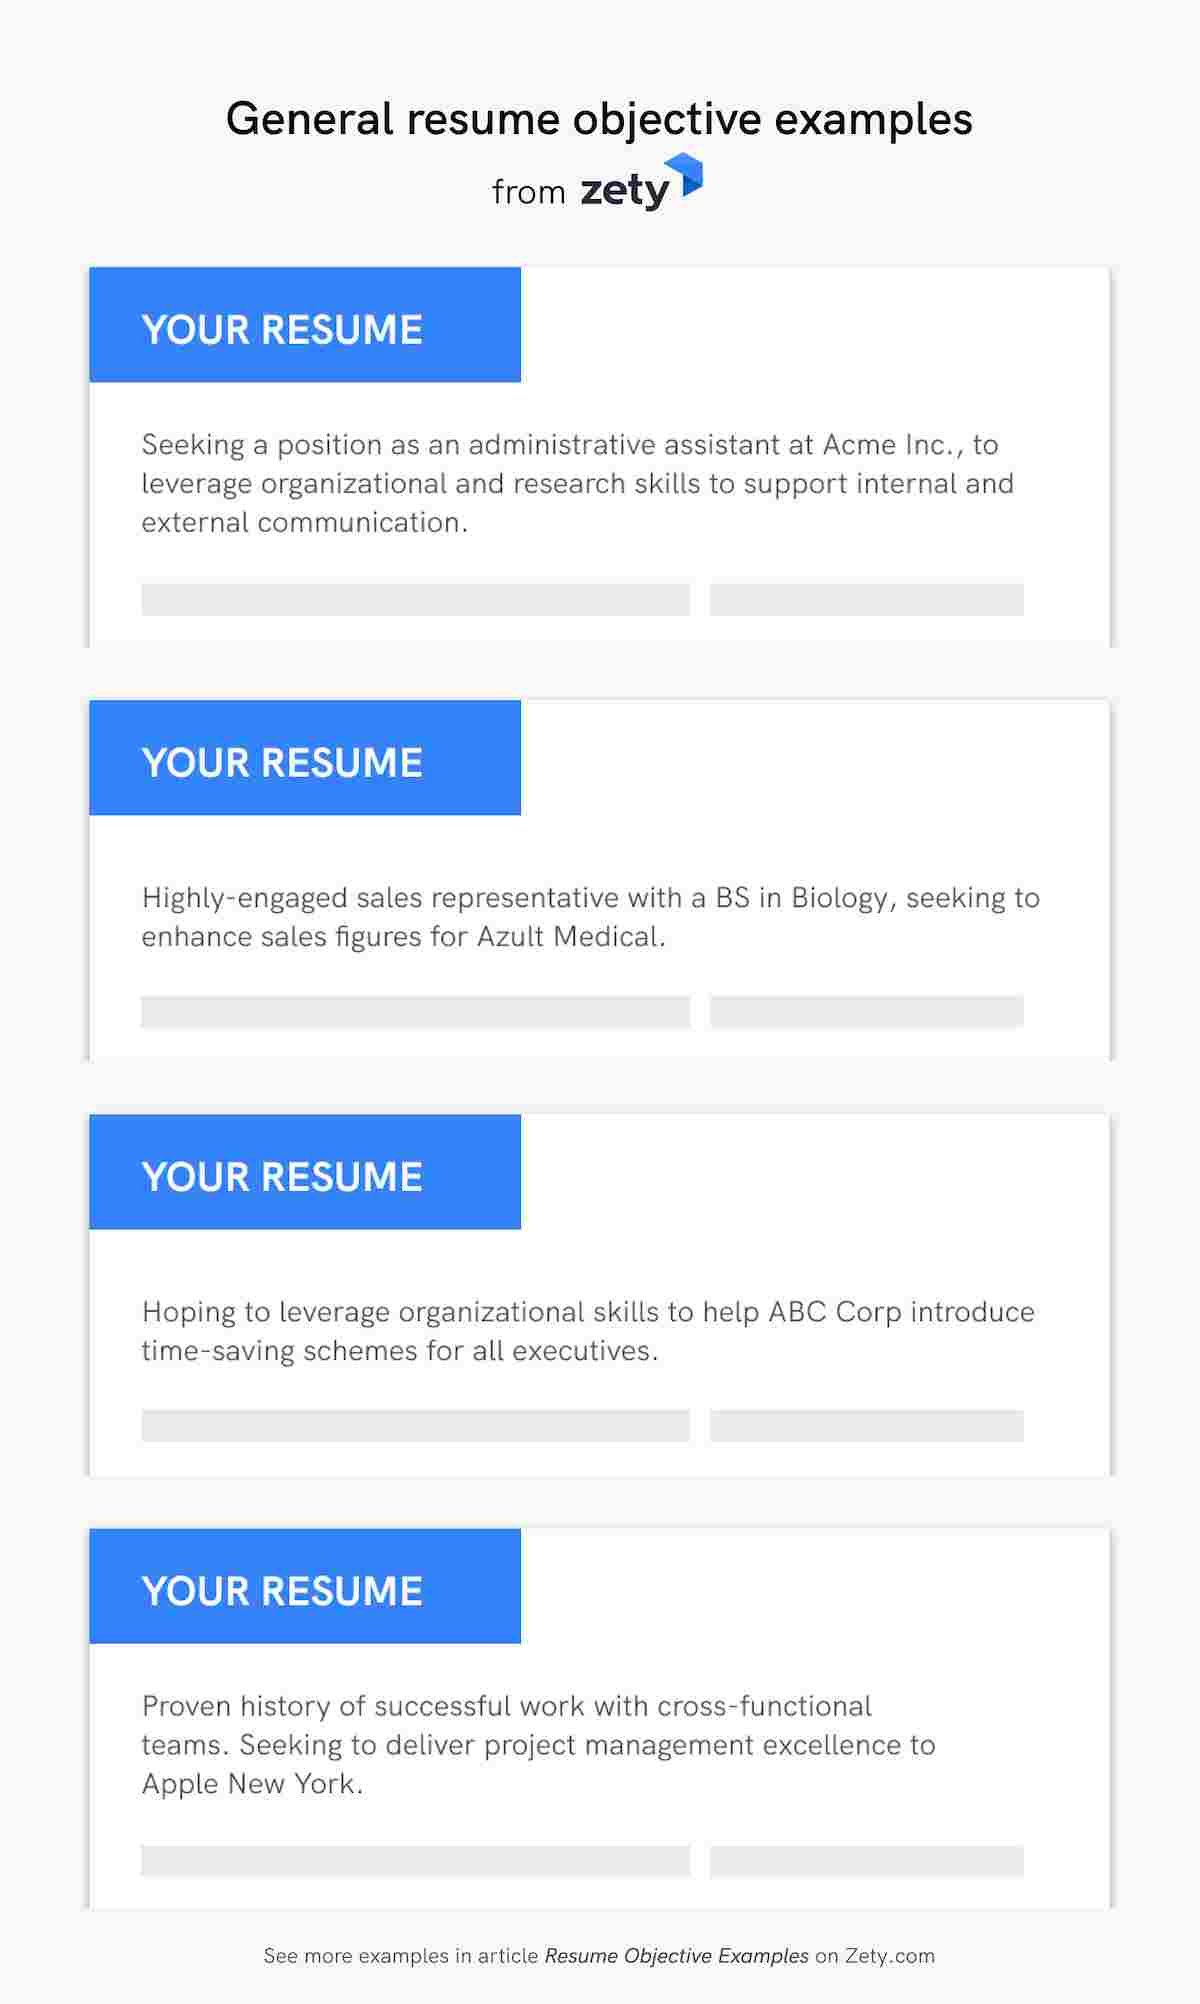 resume objective examples career objectives for all jobs good office positions general Resume Good Resume Objectives For Office Positions